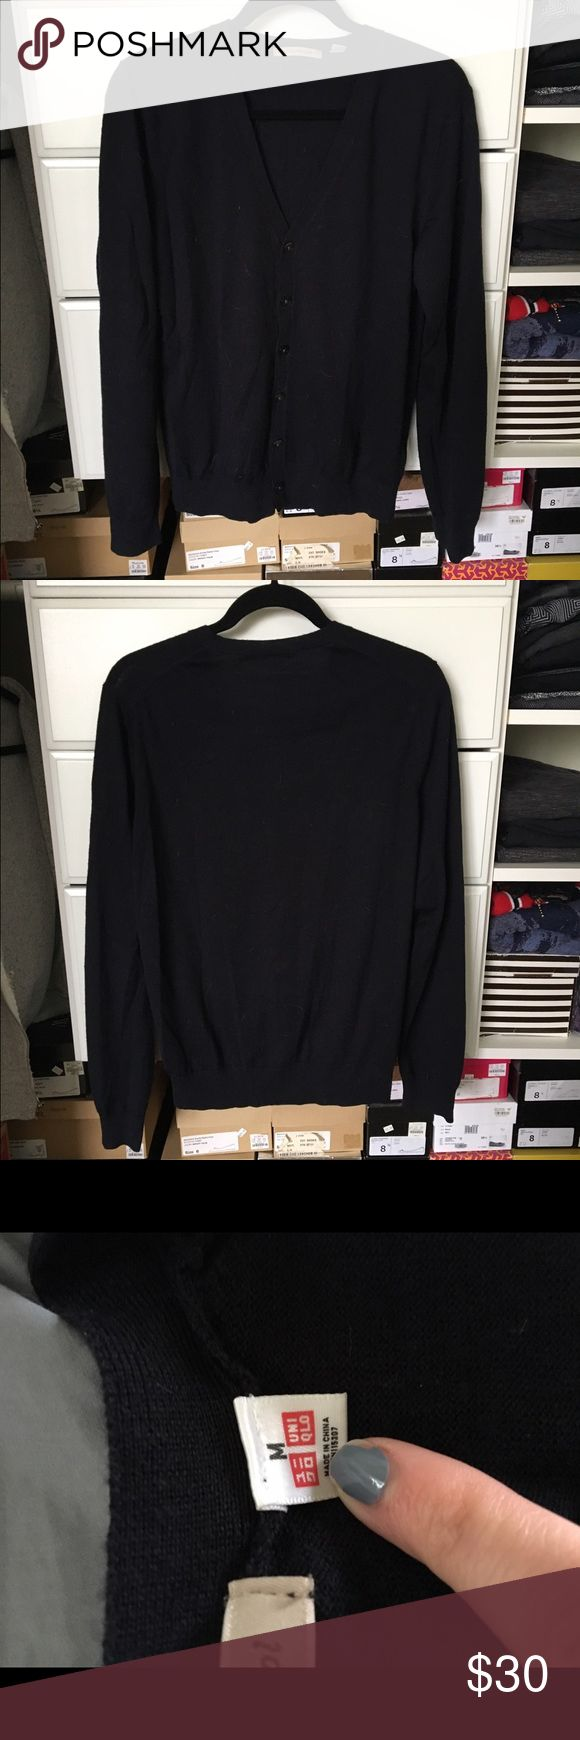 Uniqlo Cardigan Black cardigan previously worn but in good condition! Open to reasonable offers through feature! Uniqlo Sweaters Cardigan